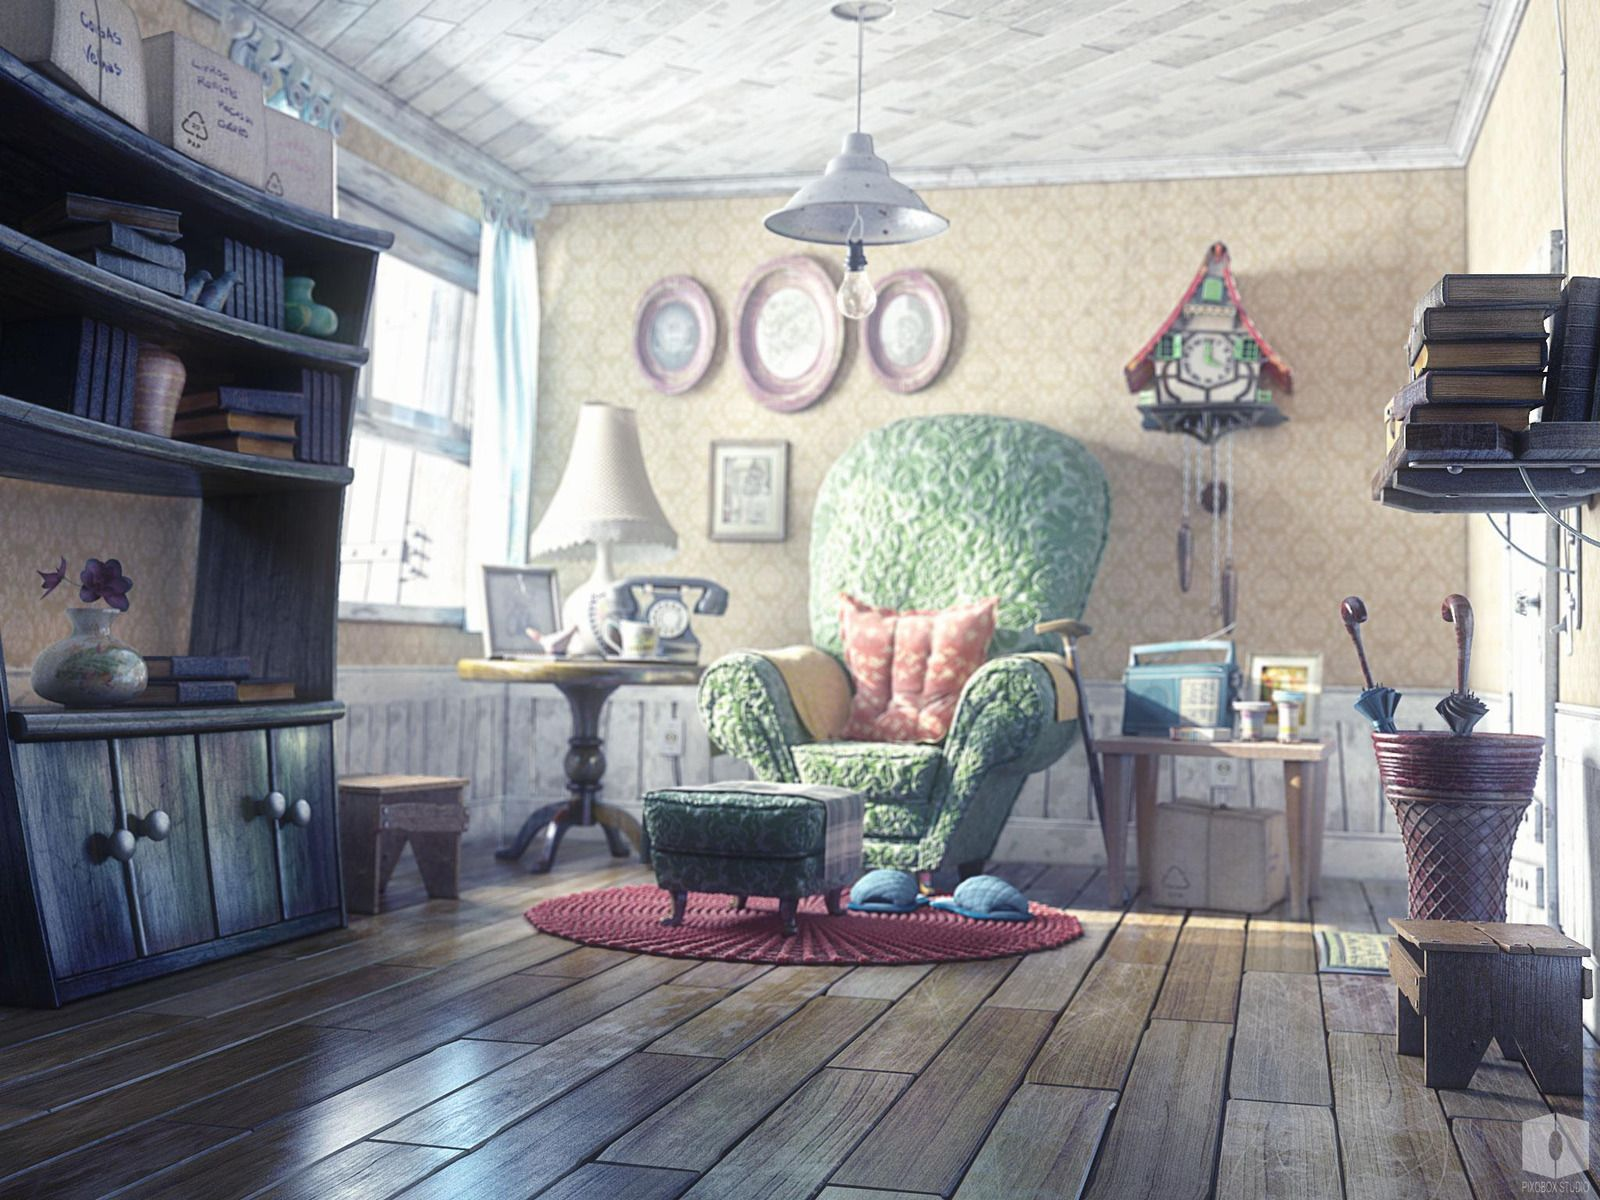 Old man house s picture 3d cartoon light house 3d room interior